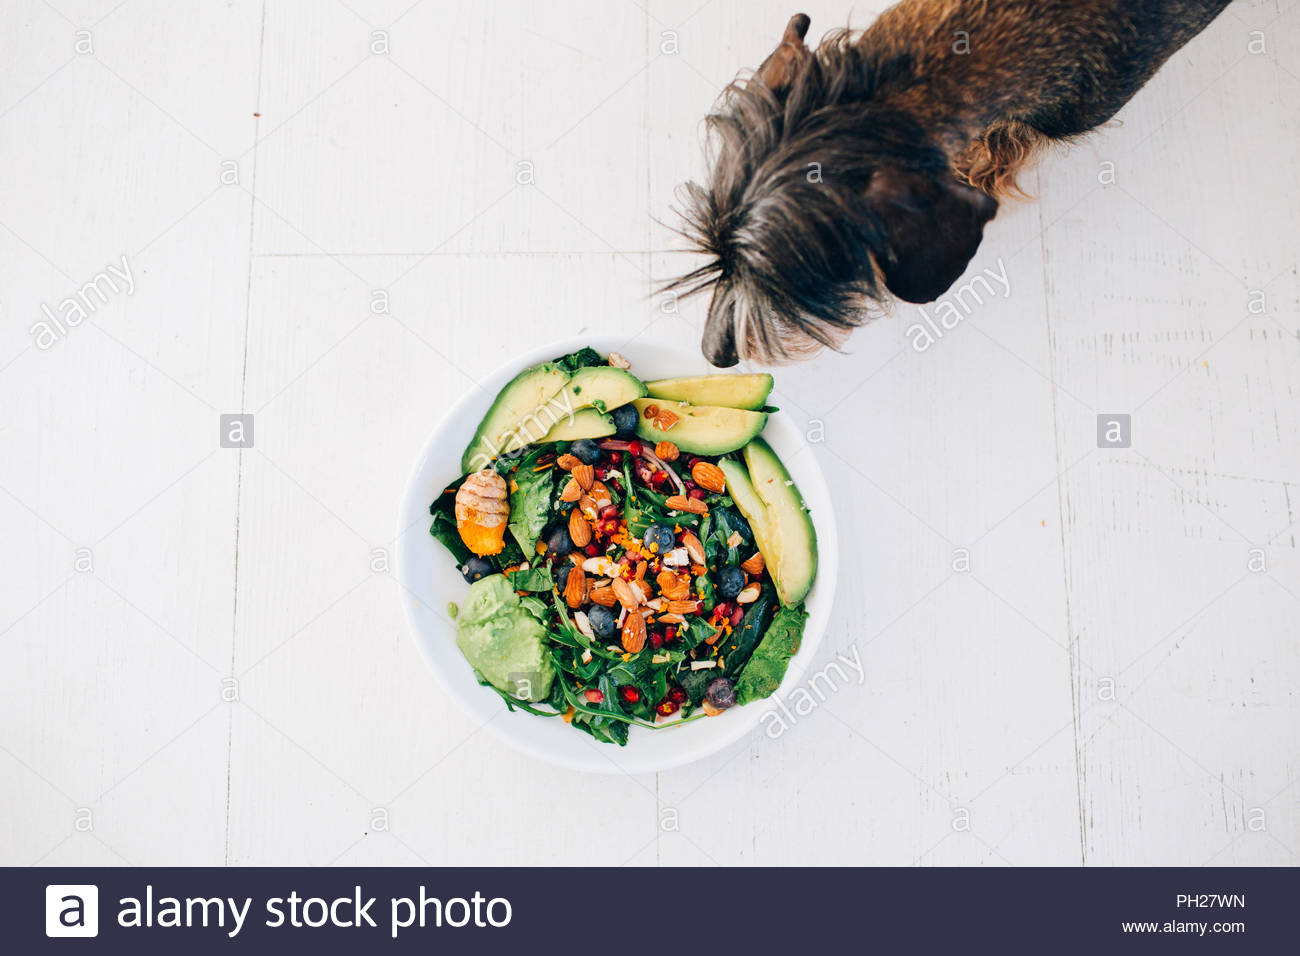 Dog sniffing salad with lettuce and avocado - Stock Image